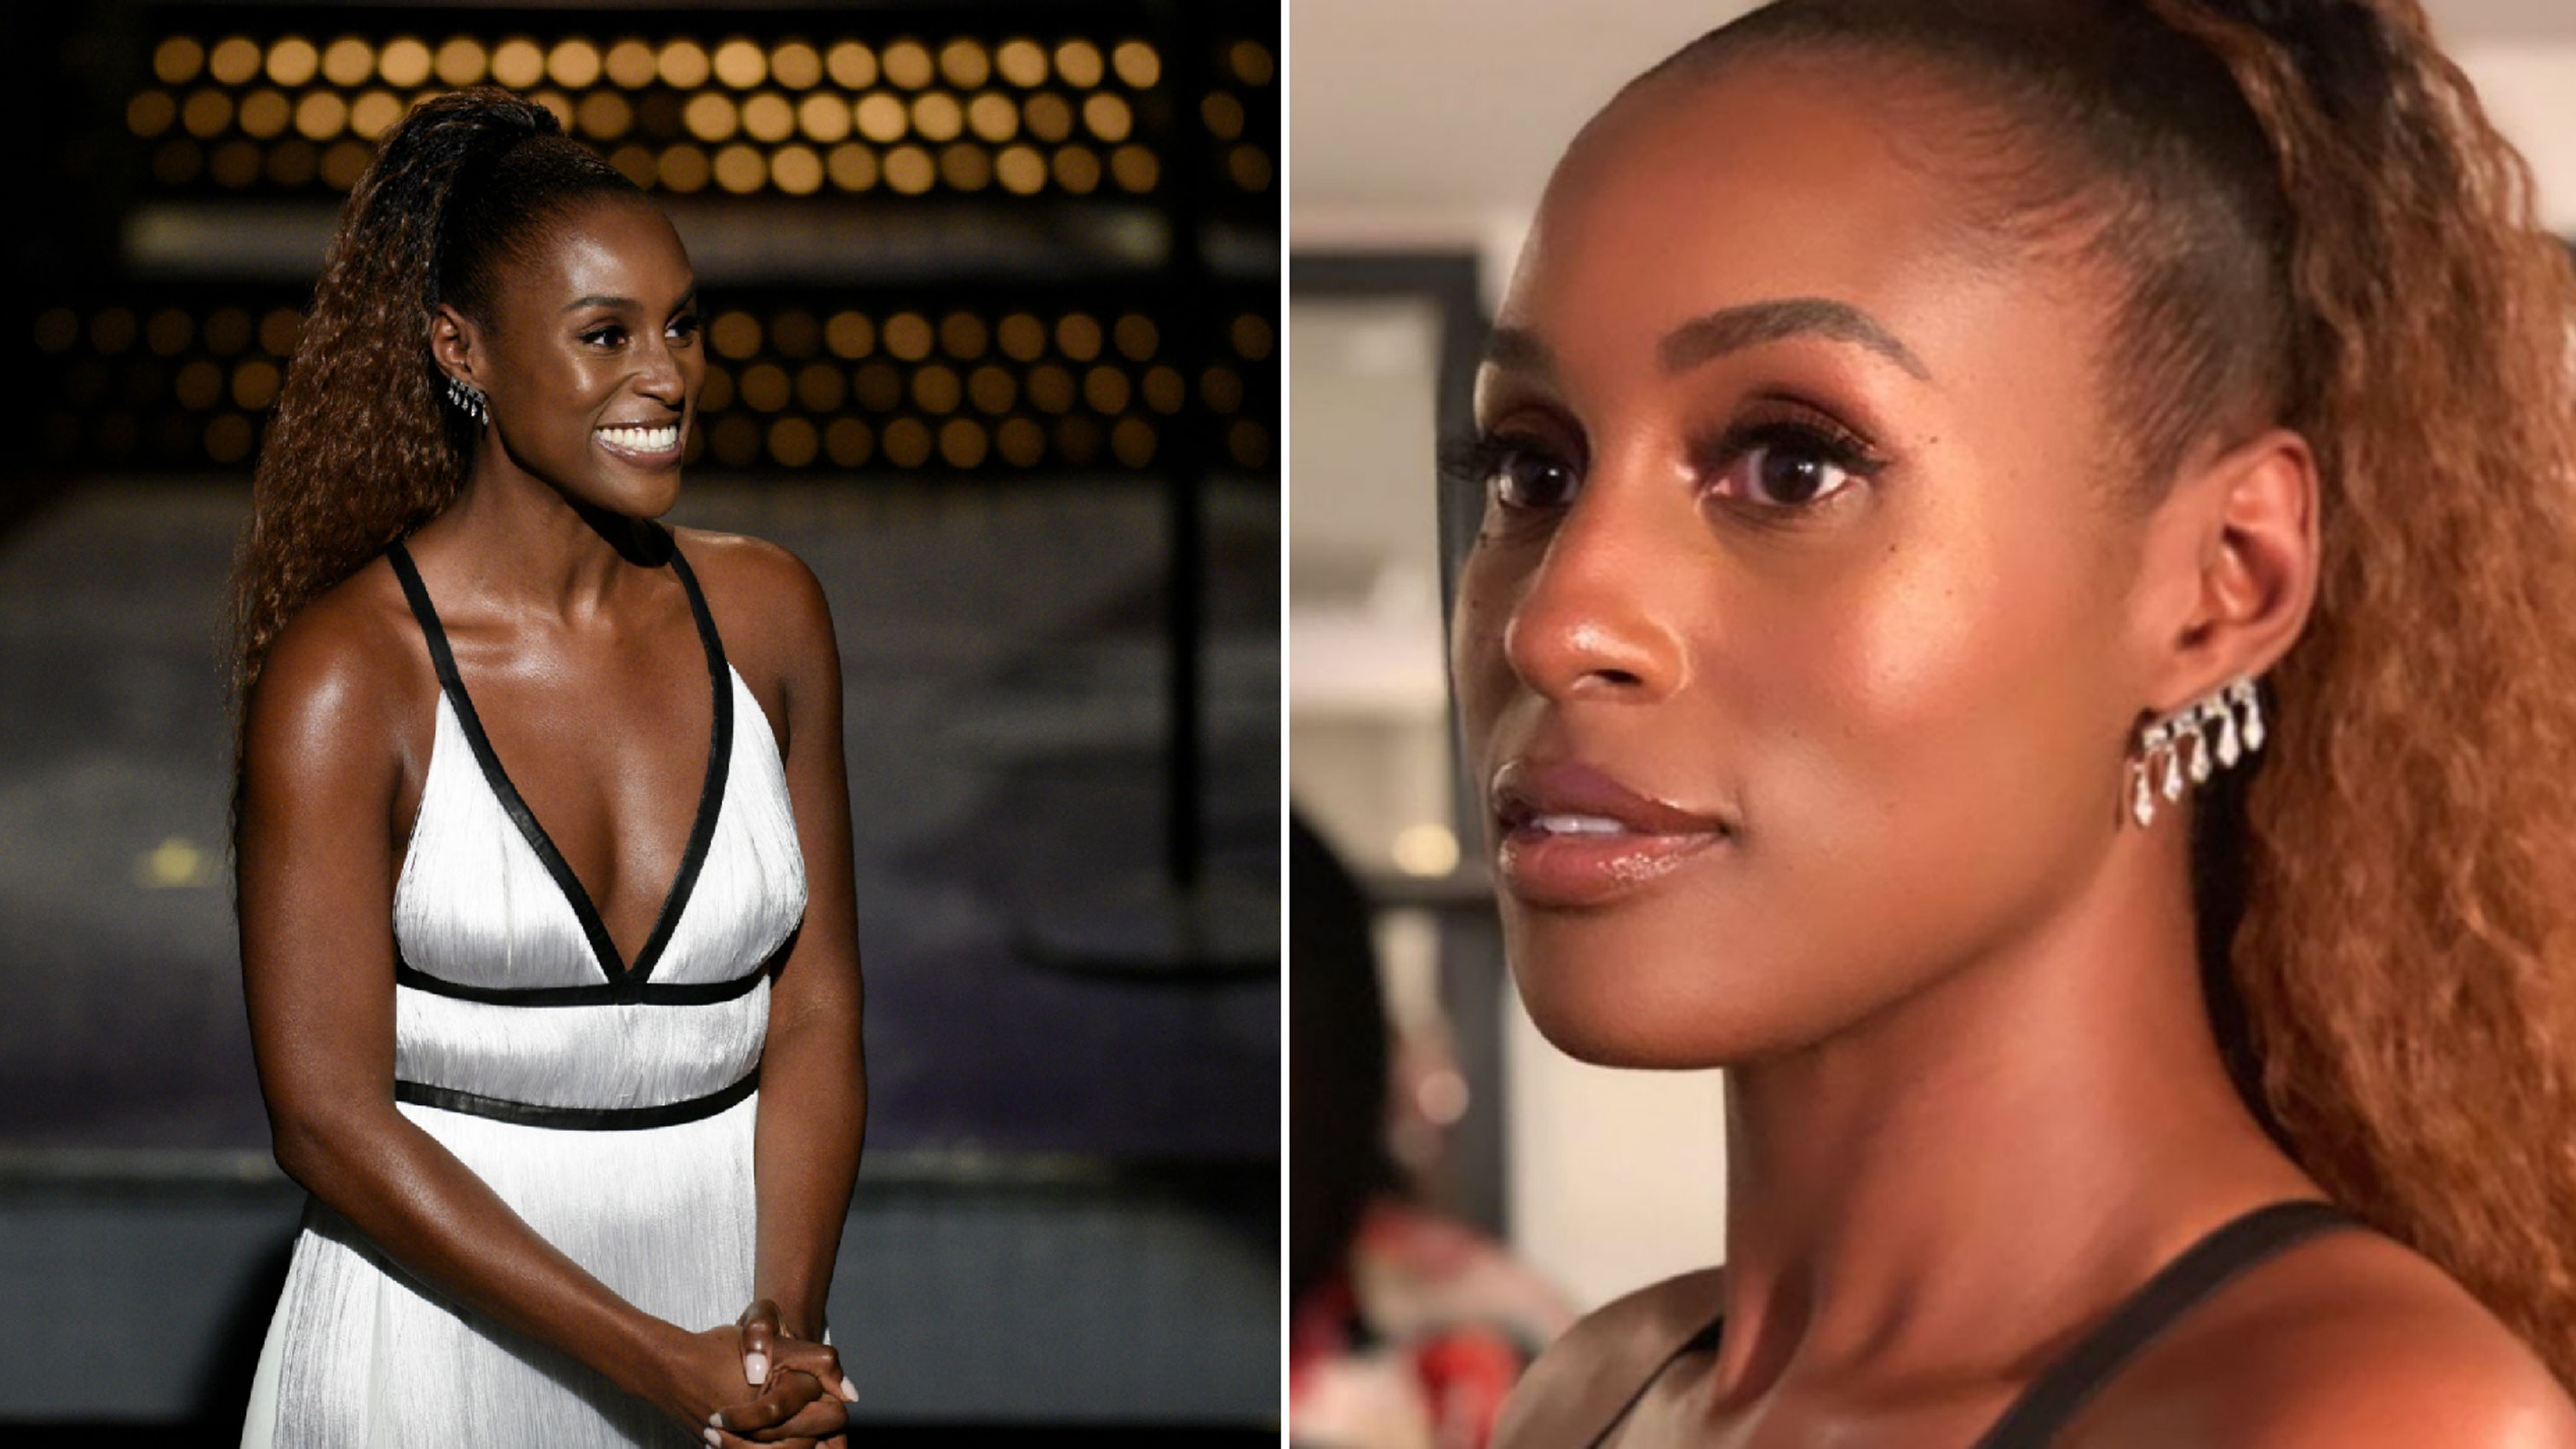 Every Product Used to Create Issa Rae's Radiant Saturday Night Live Look